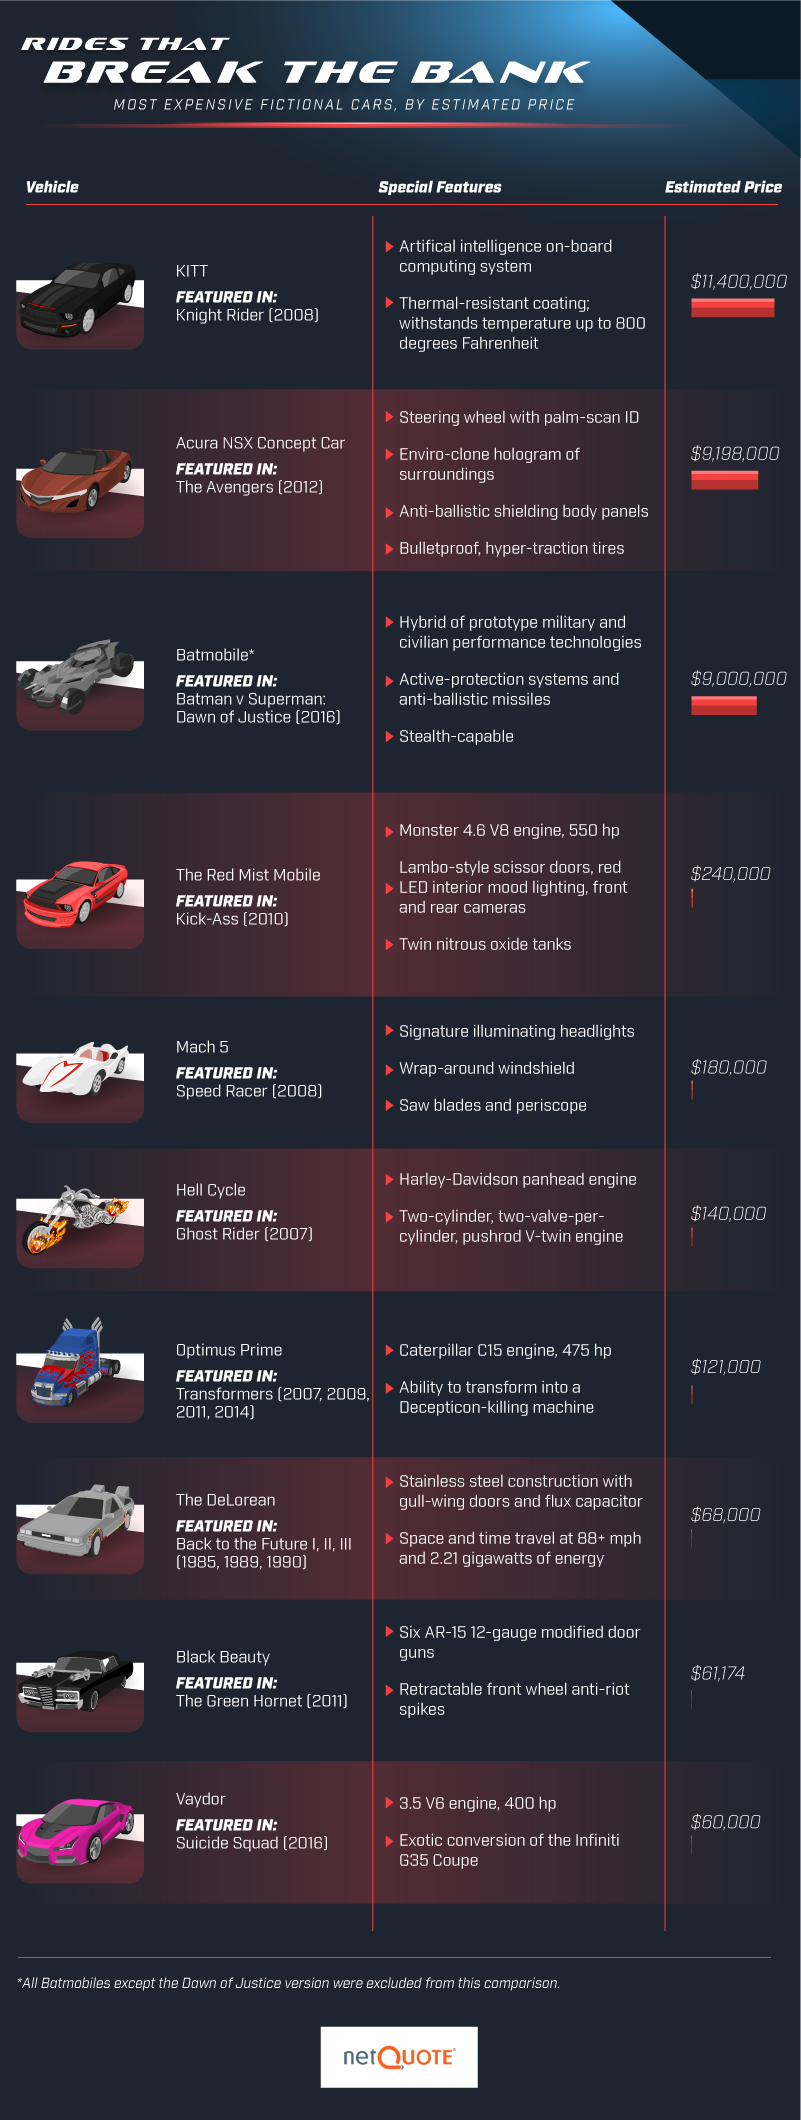 Most expensive movie and television cars infographic